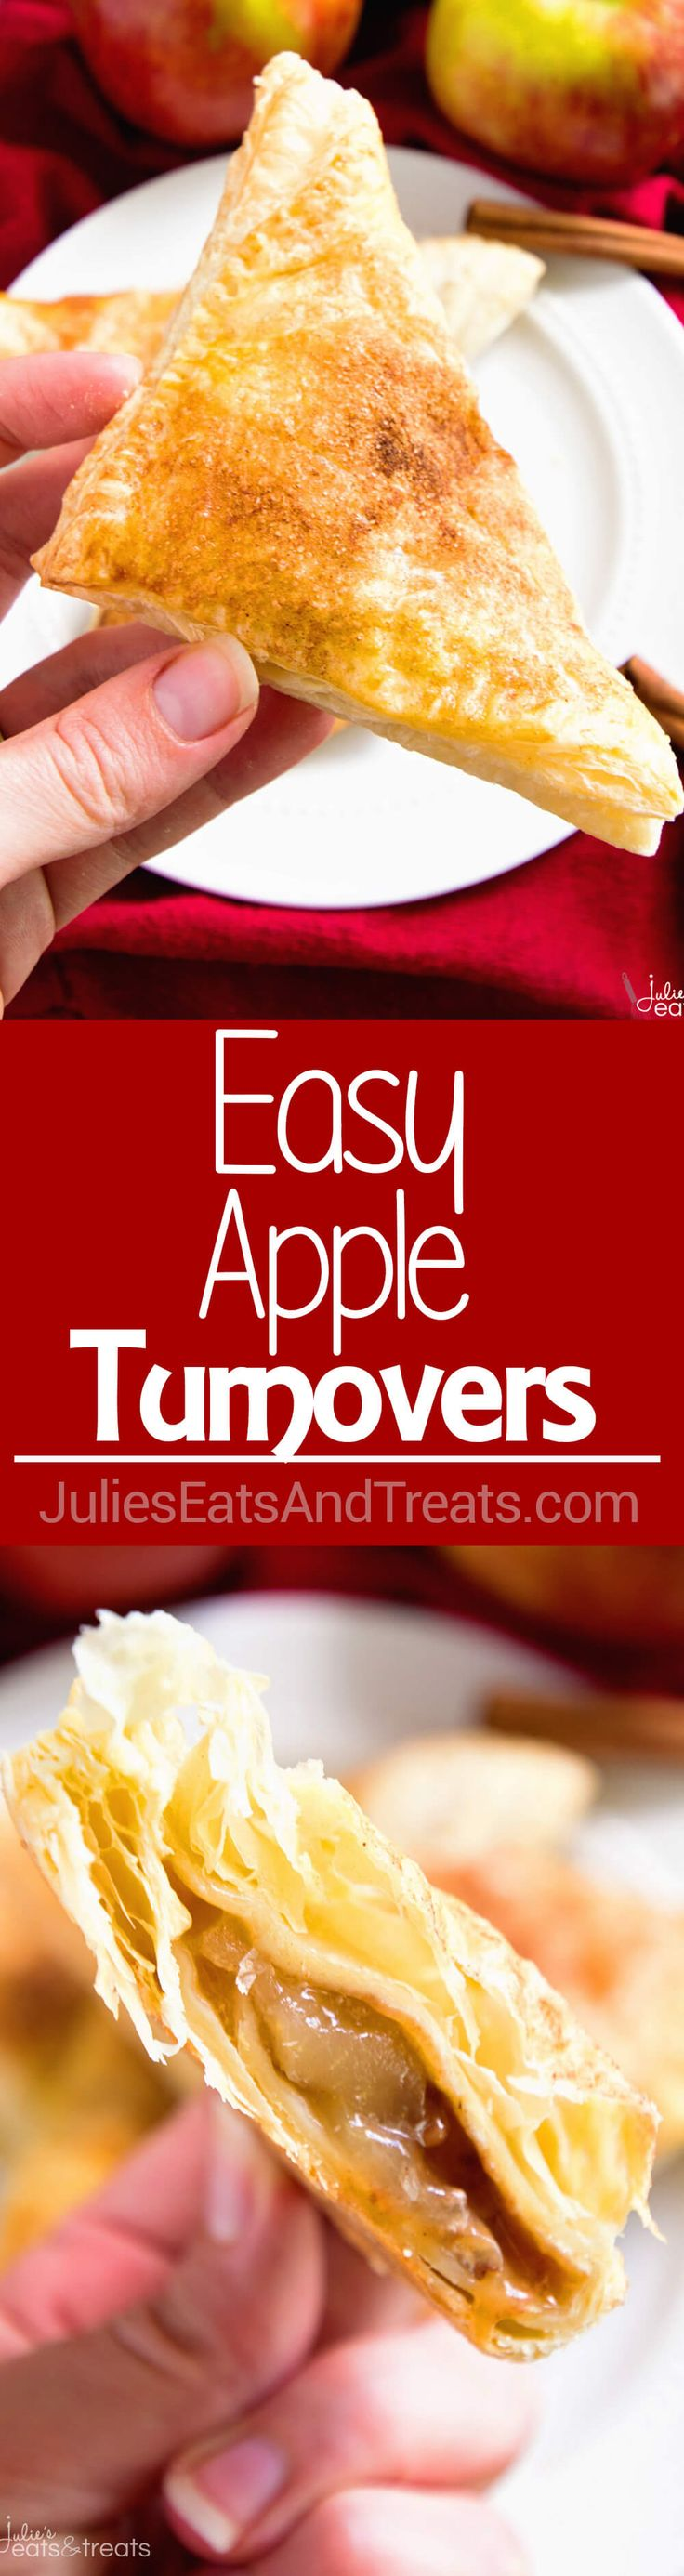 Easy Apple Turnovers ~ This Easy Apple Turnovers Recipe is Perfect for a Quick and Easy Breakfast, Snack or Dessert! ~ http://www.julieseatsandtreats.com